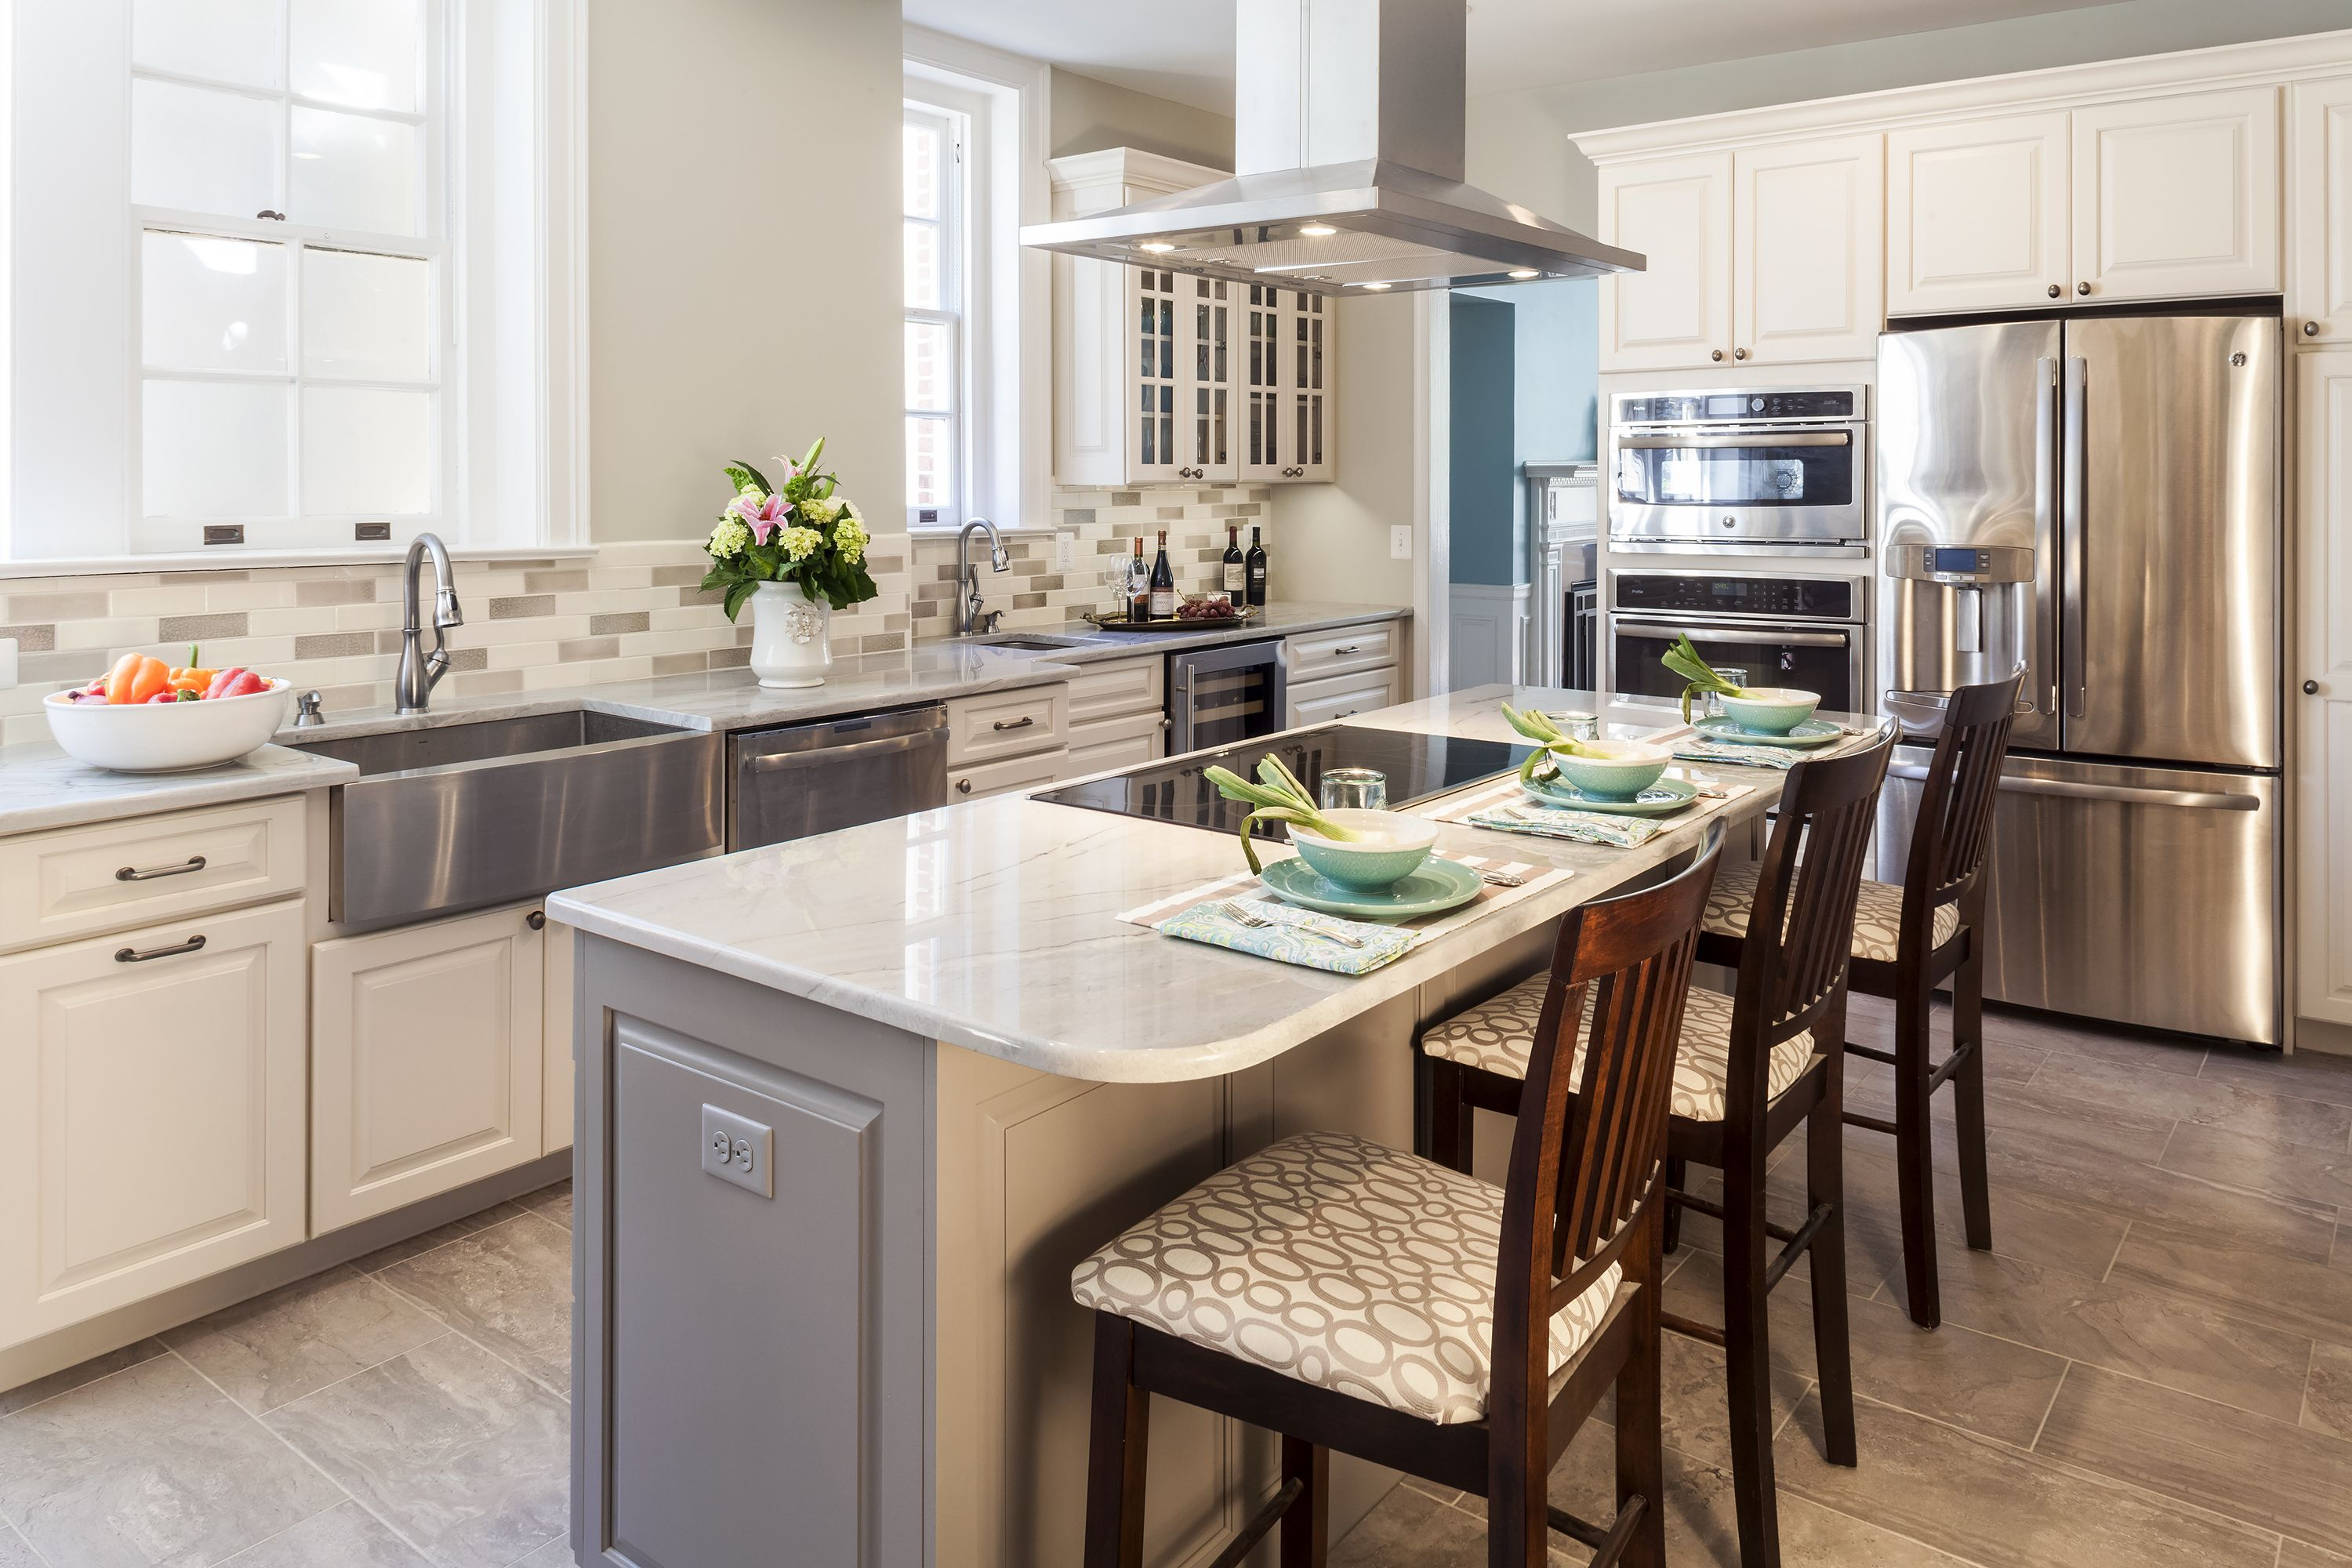 Owings Brothers Contracting Home Remodeling In Maryland Kitchen Remodel Cost Kitchen Remodel Kitchen Remodel Estimate